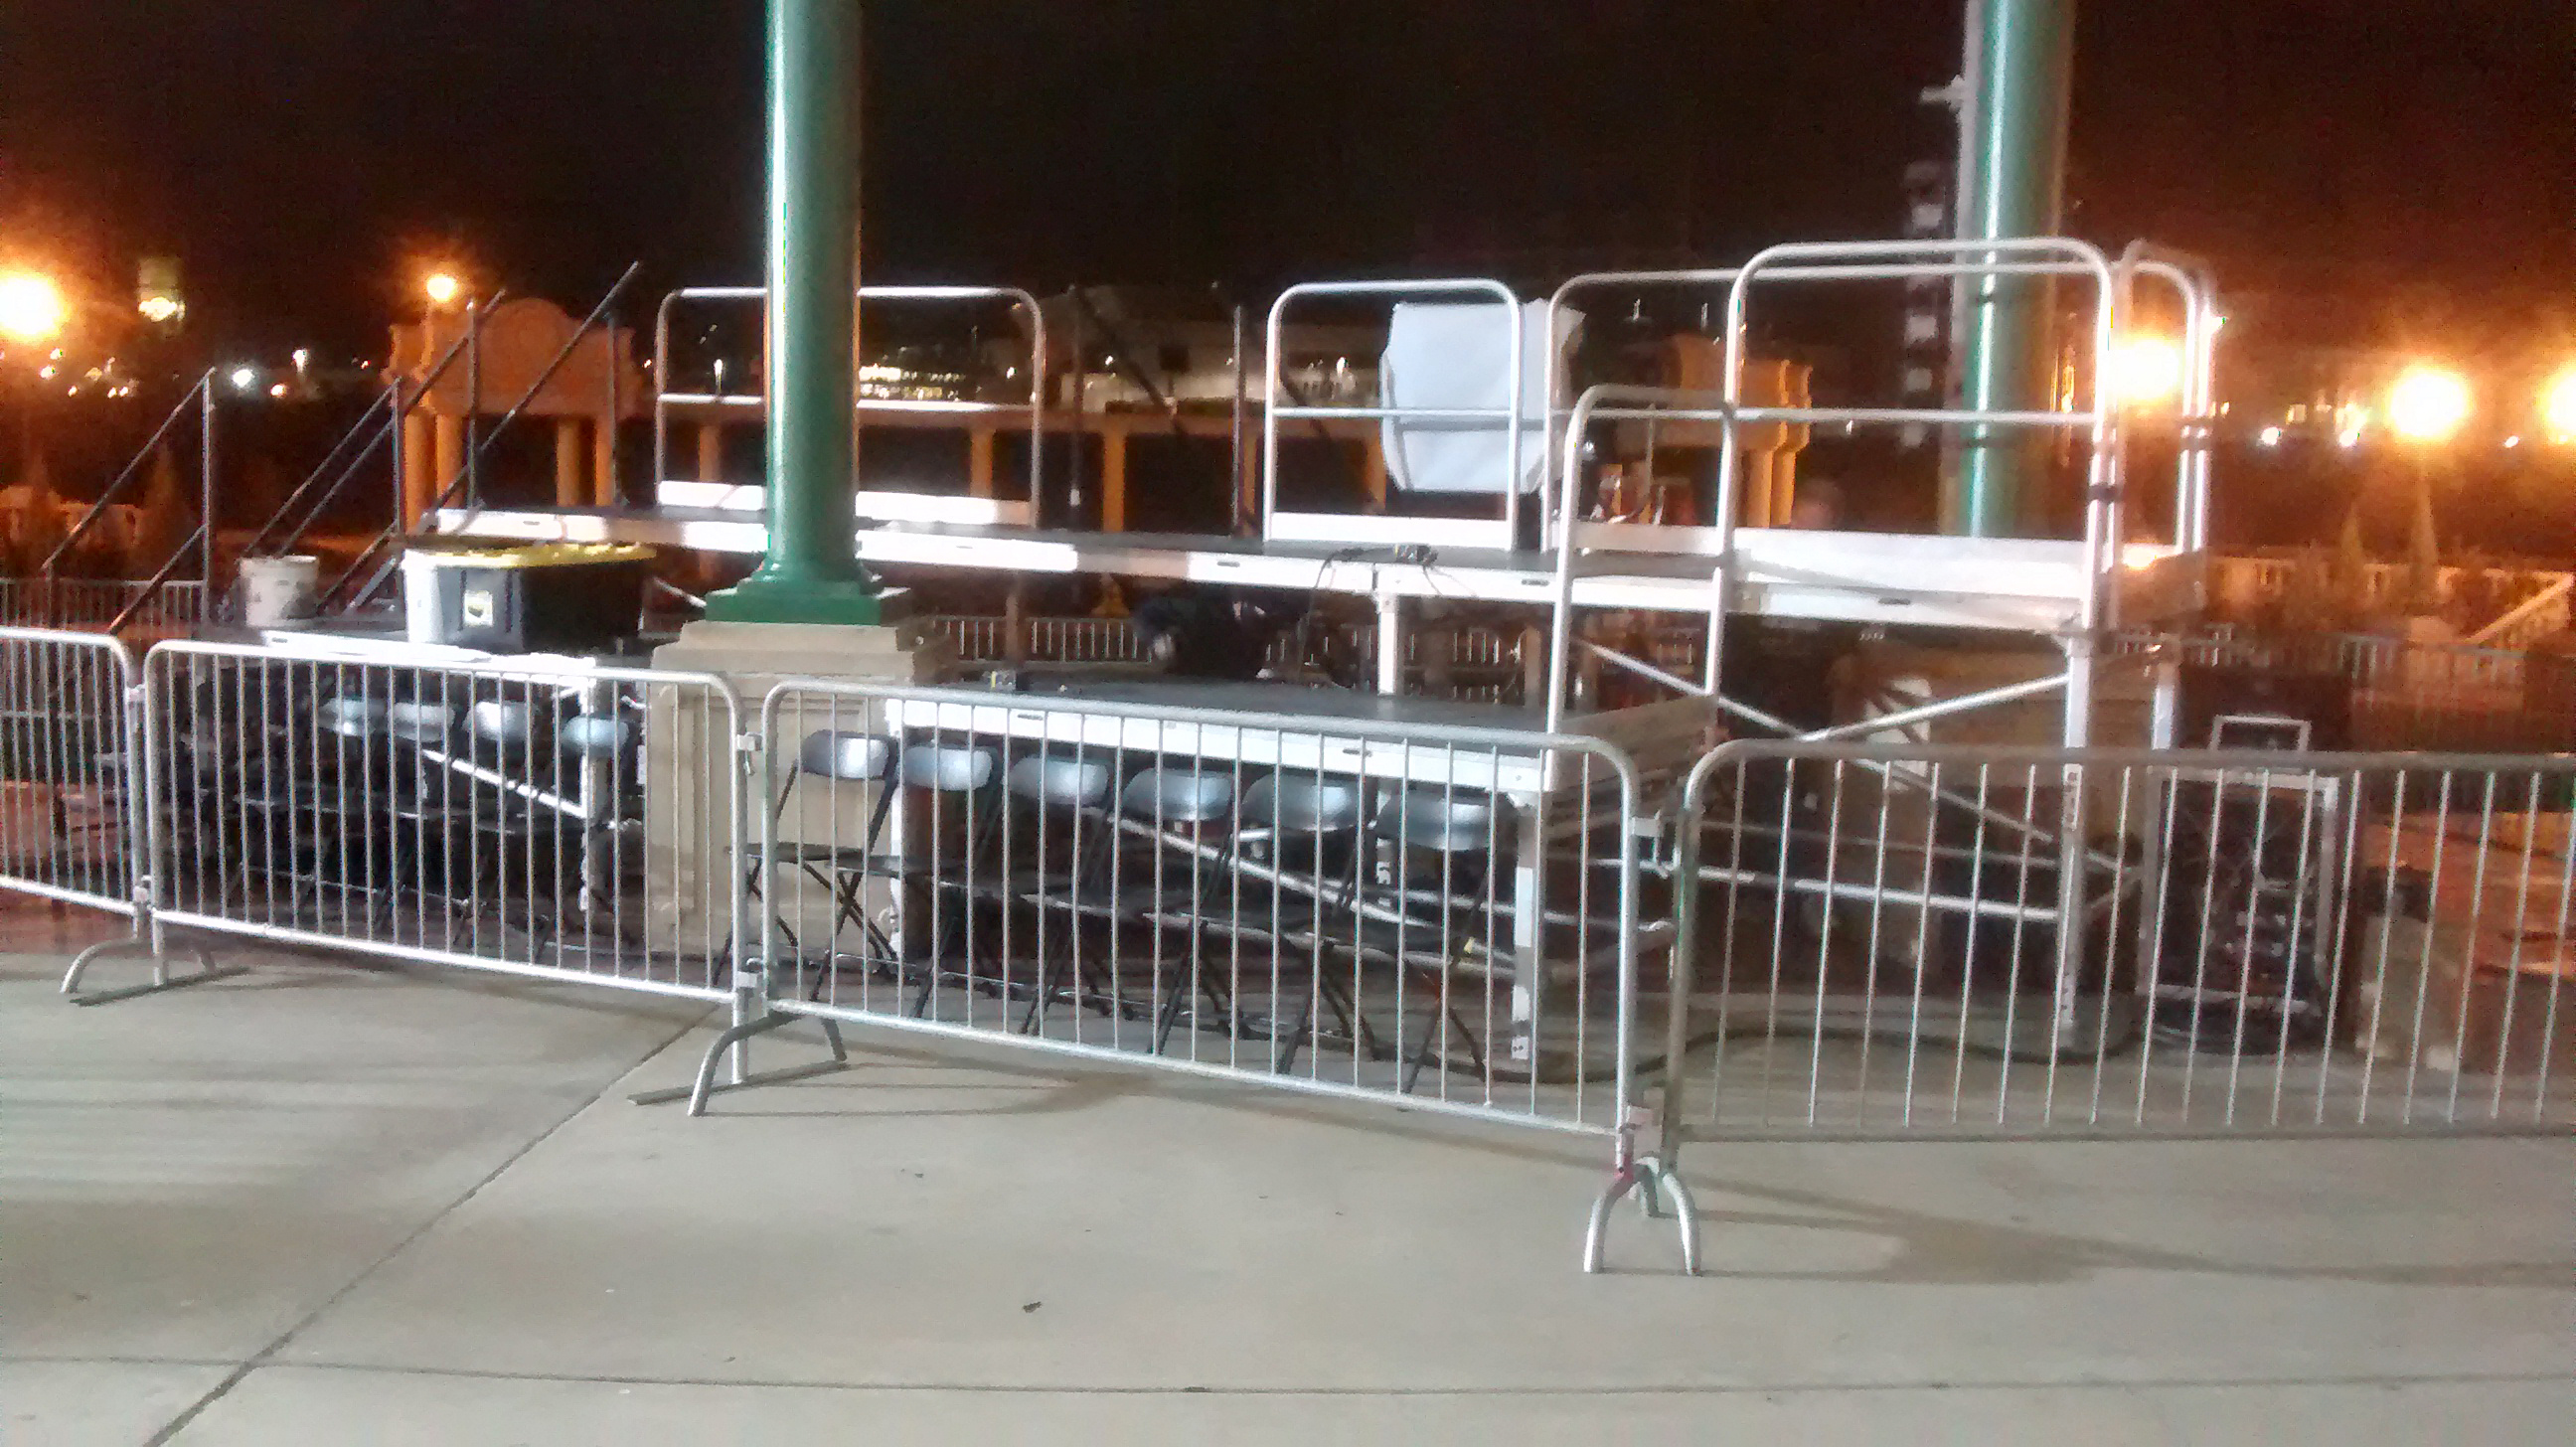 Press risers with barricade setup for political event at Larsen Park Road, Sioux City, Iowa